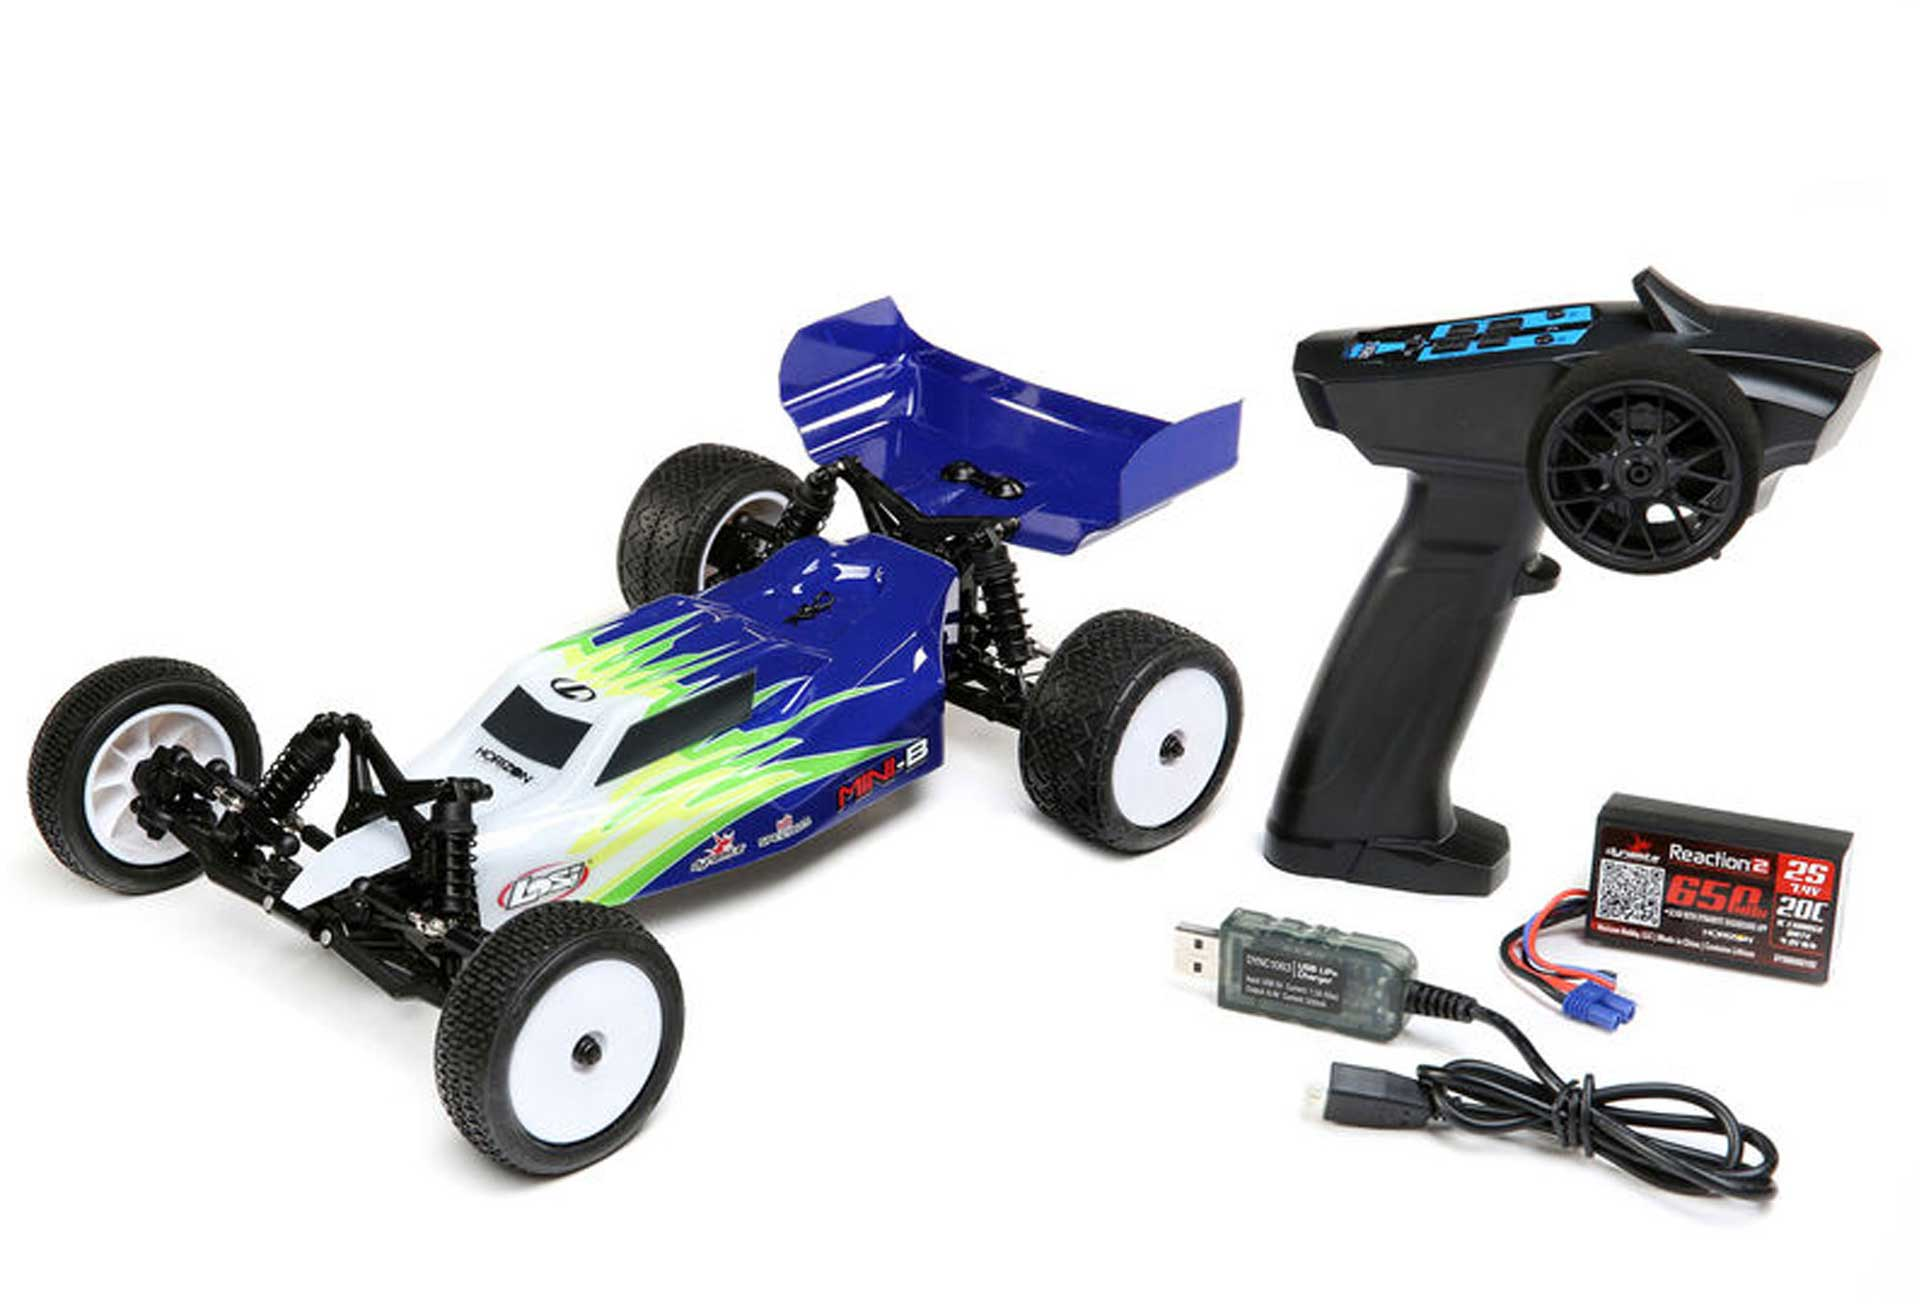 LOSI Mini-B Brushed RTR 1/16 2WD Buggy Blau/Weiß